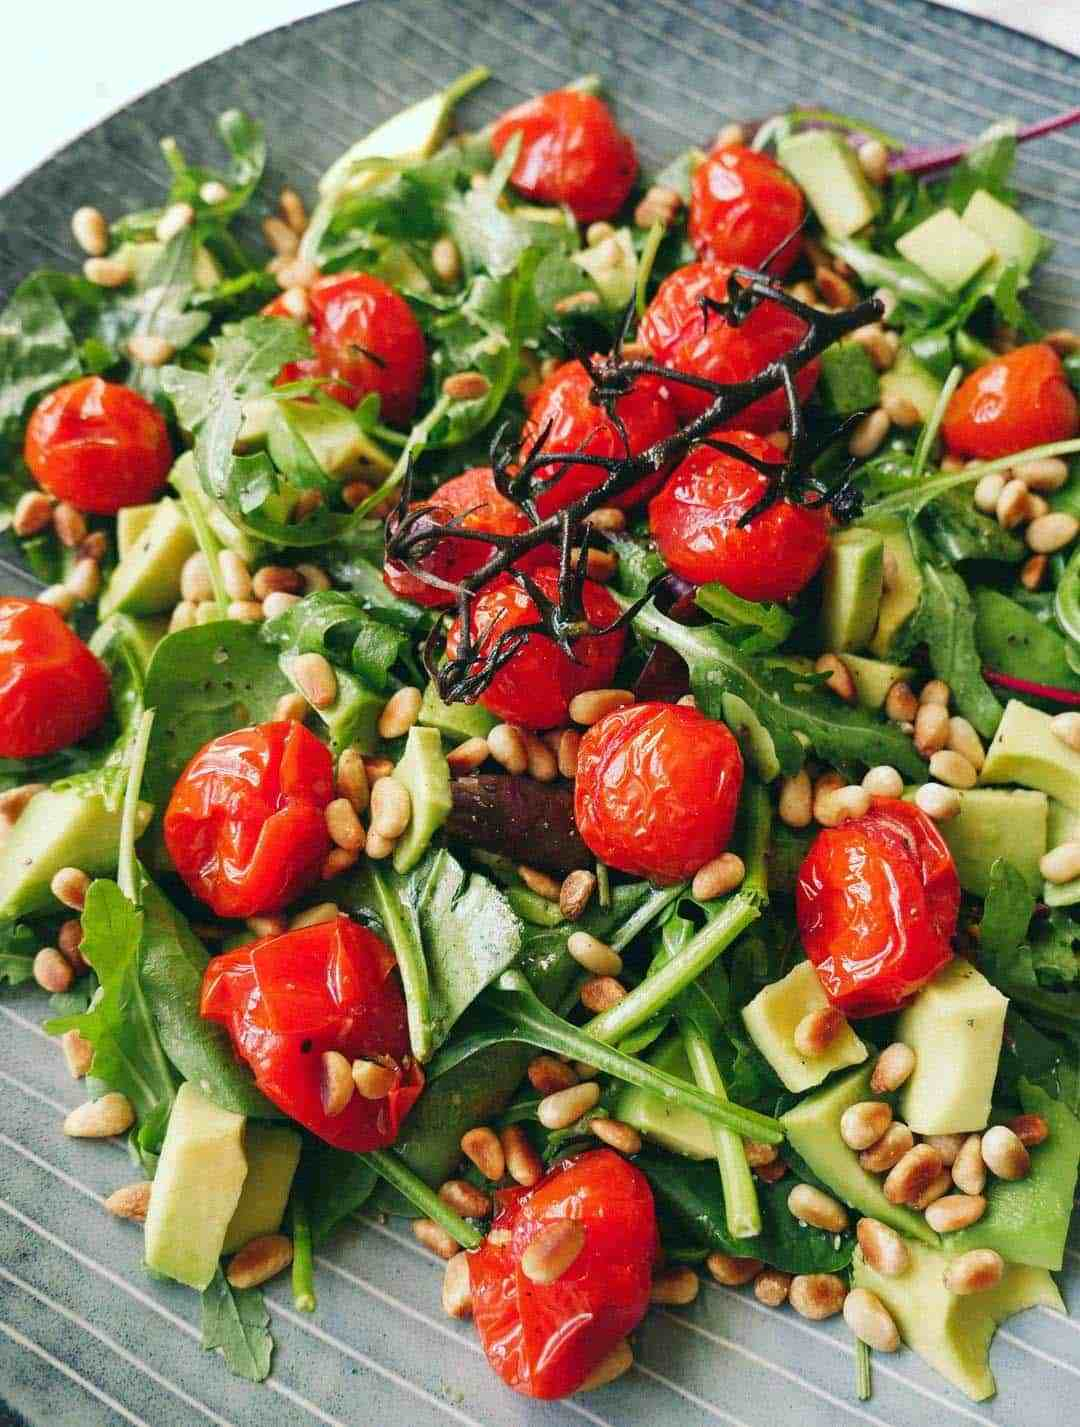 Rucola salad with pine nuts and baked tomatoes